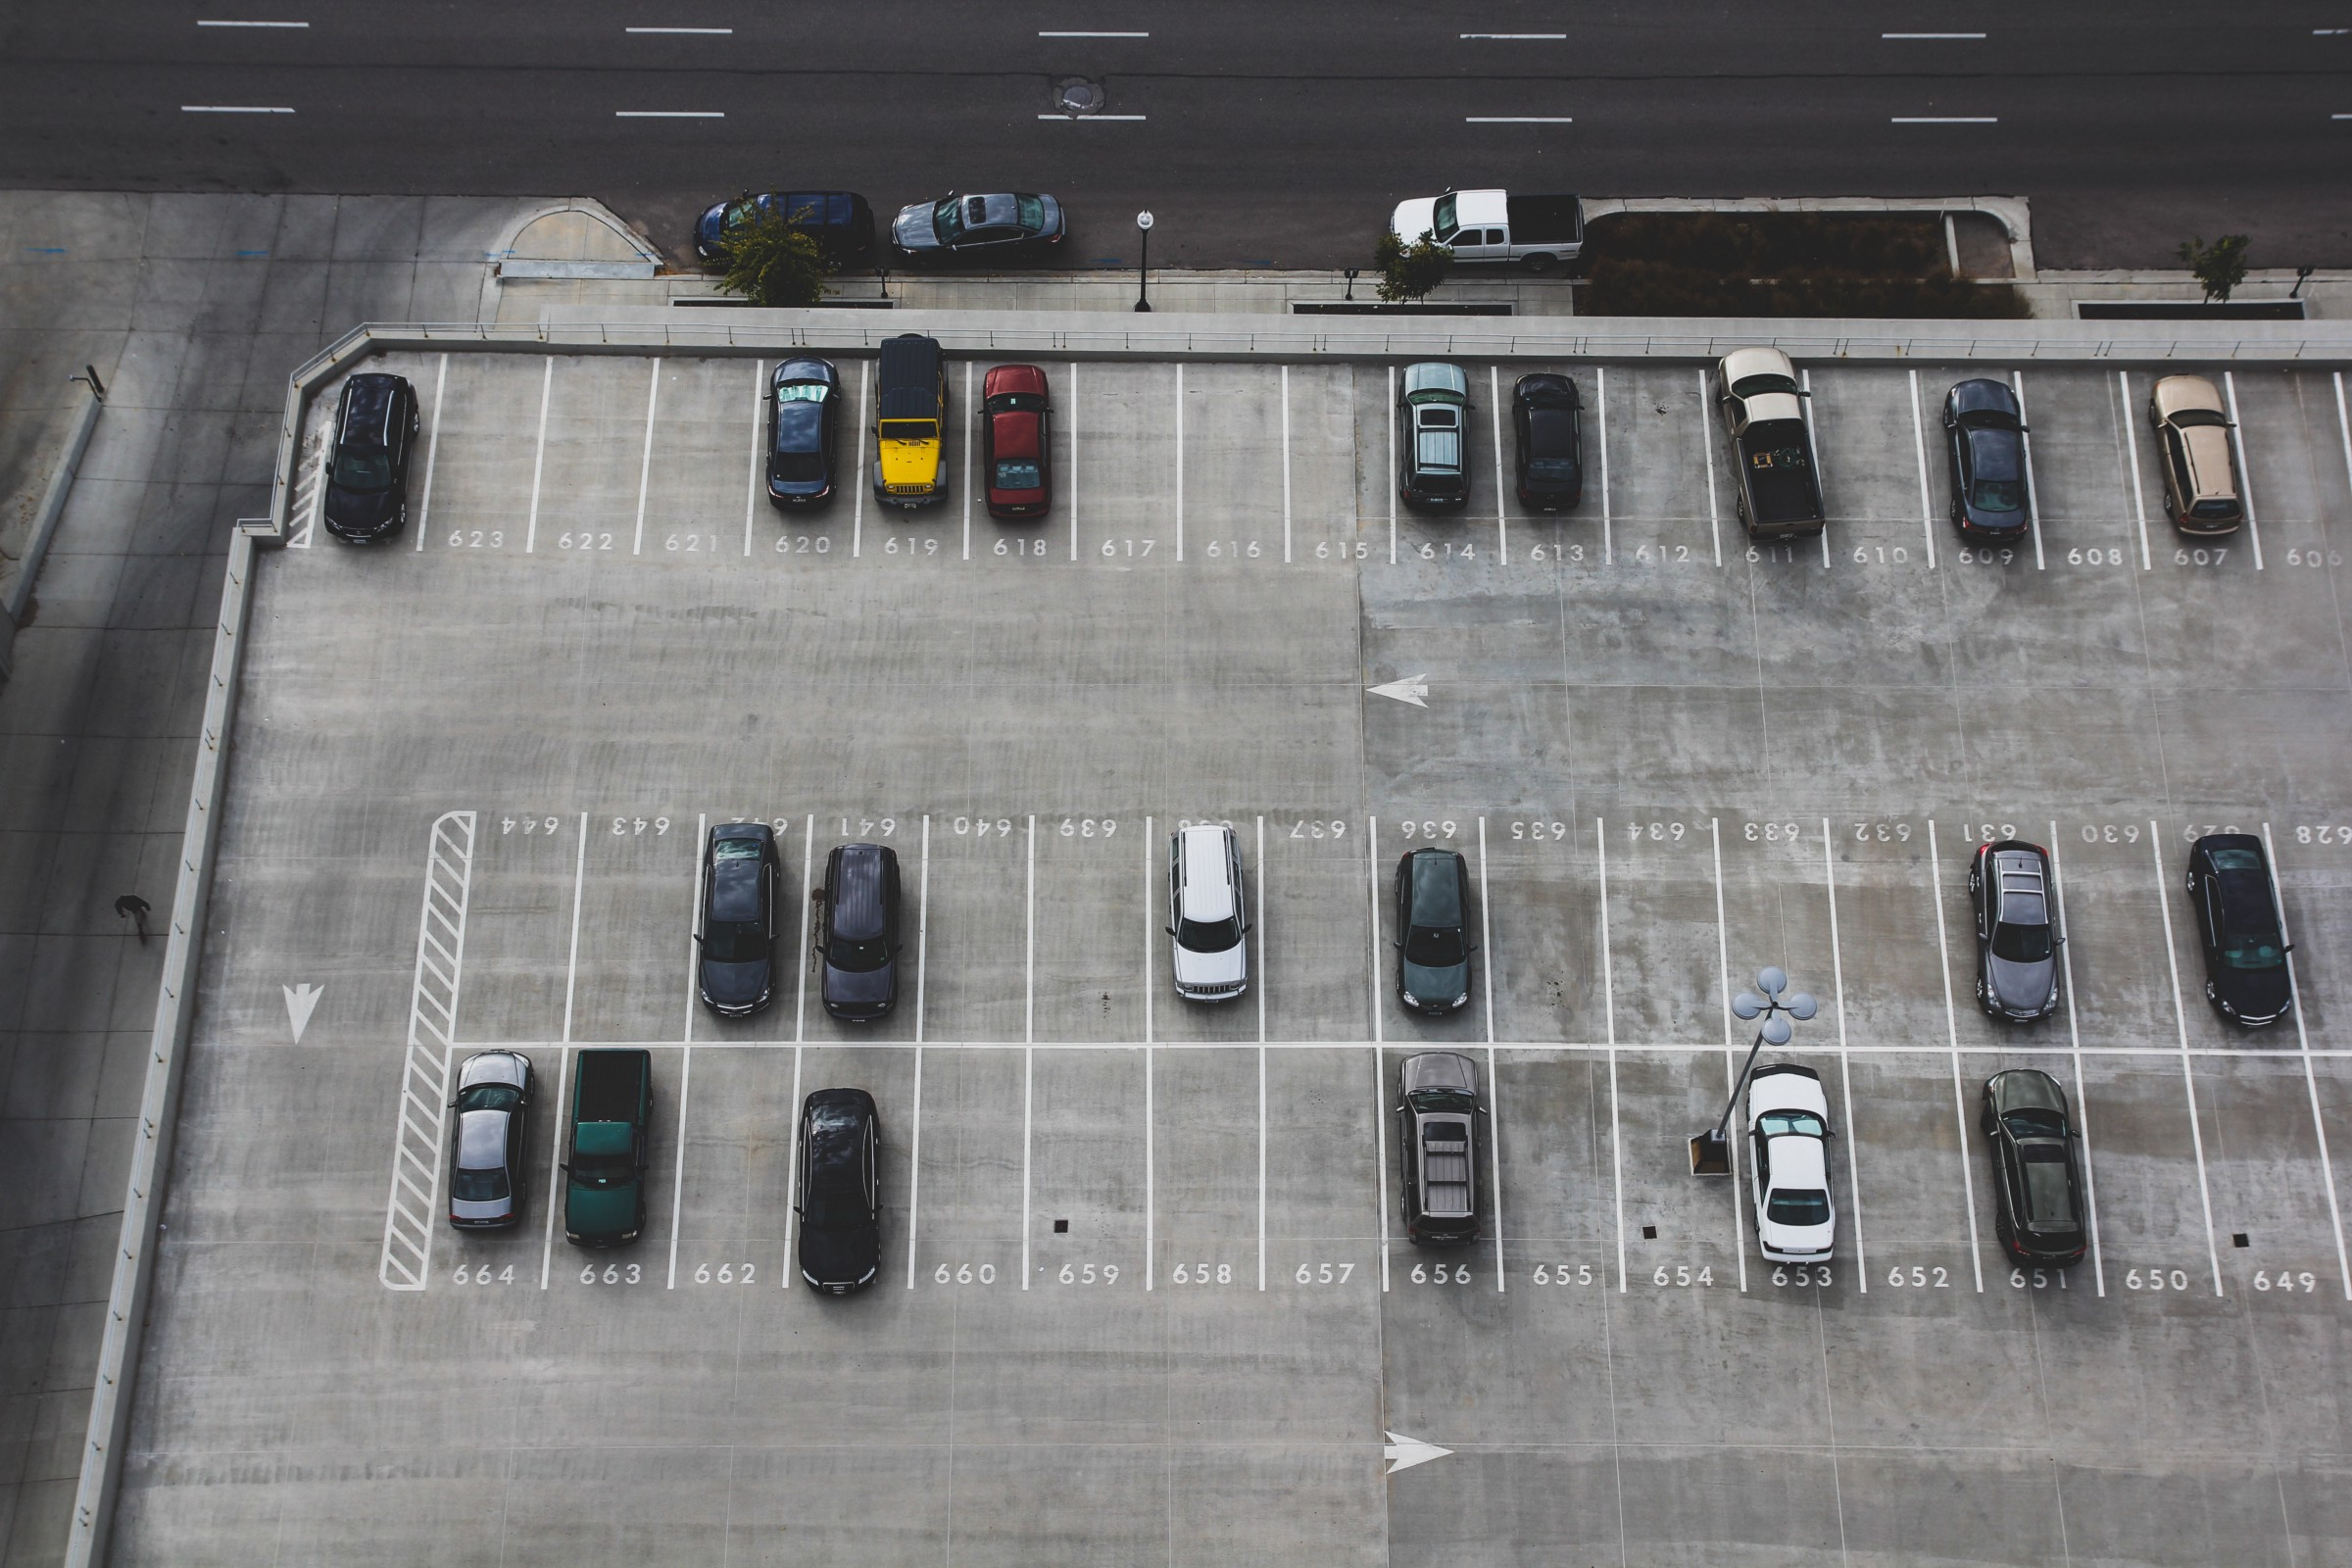 /will-smart-parking-systems-help-city-dwellers-find-a-spot-aa68f6723f40 feature image